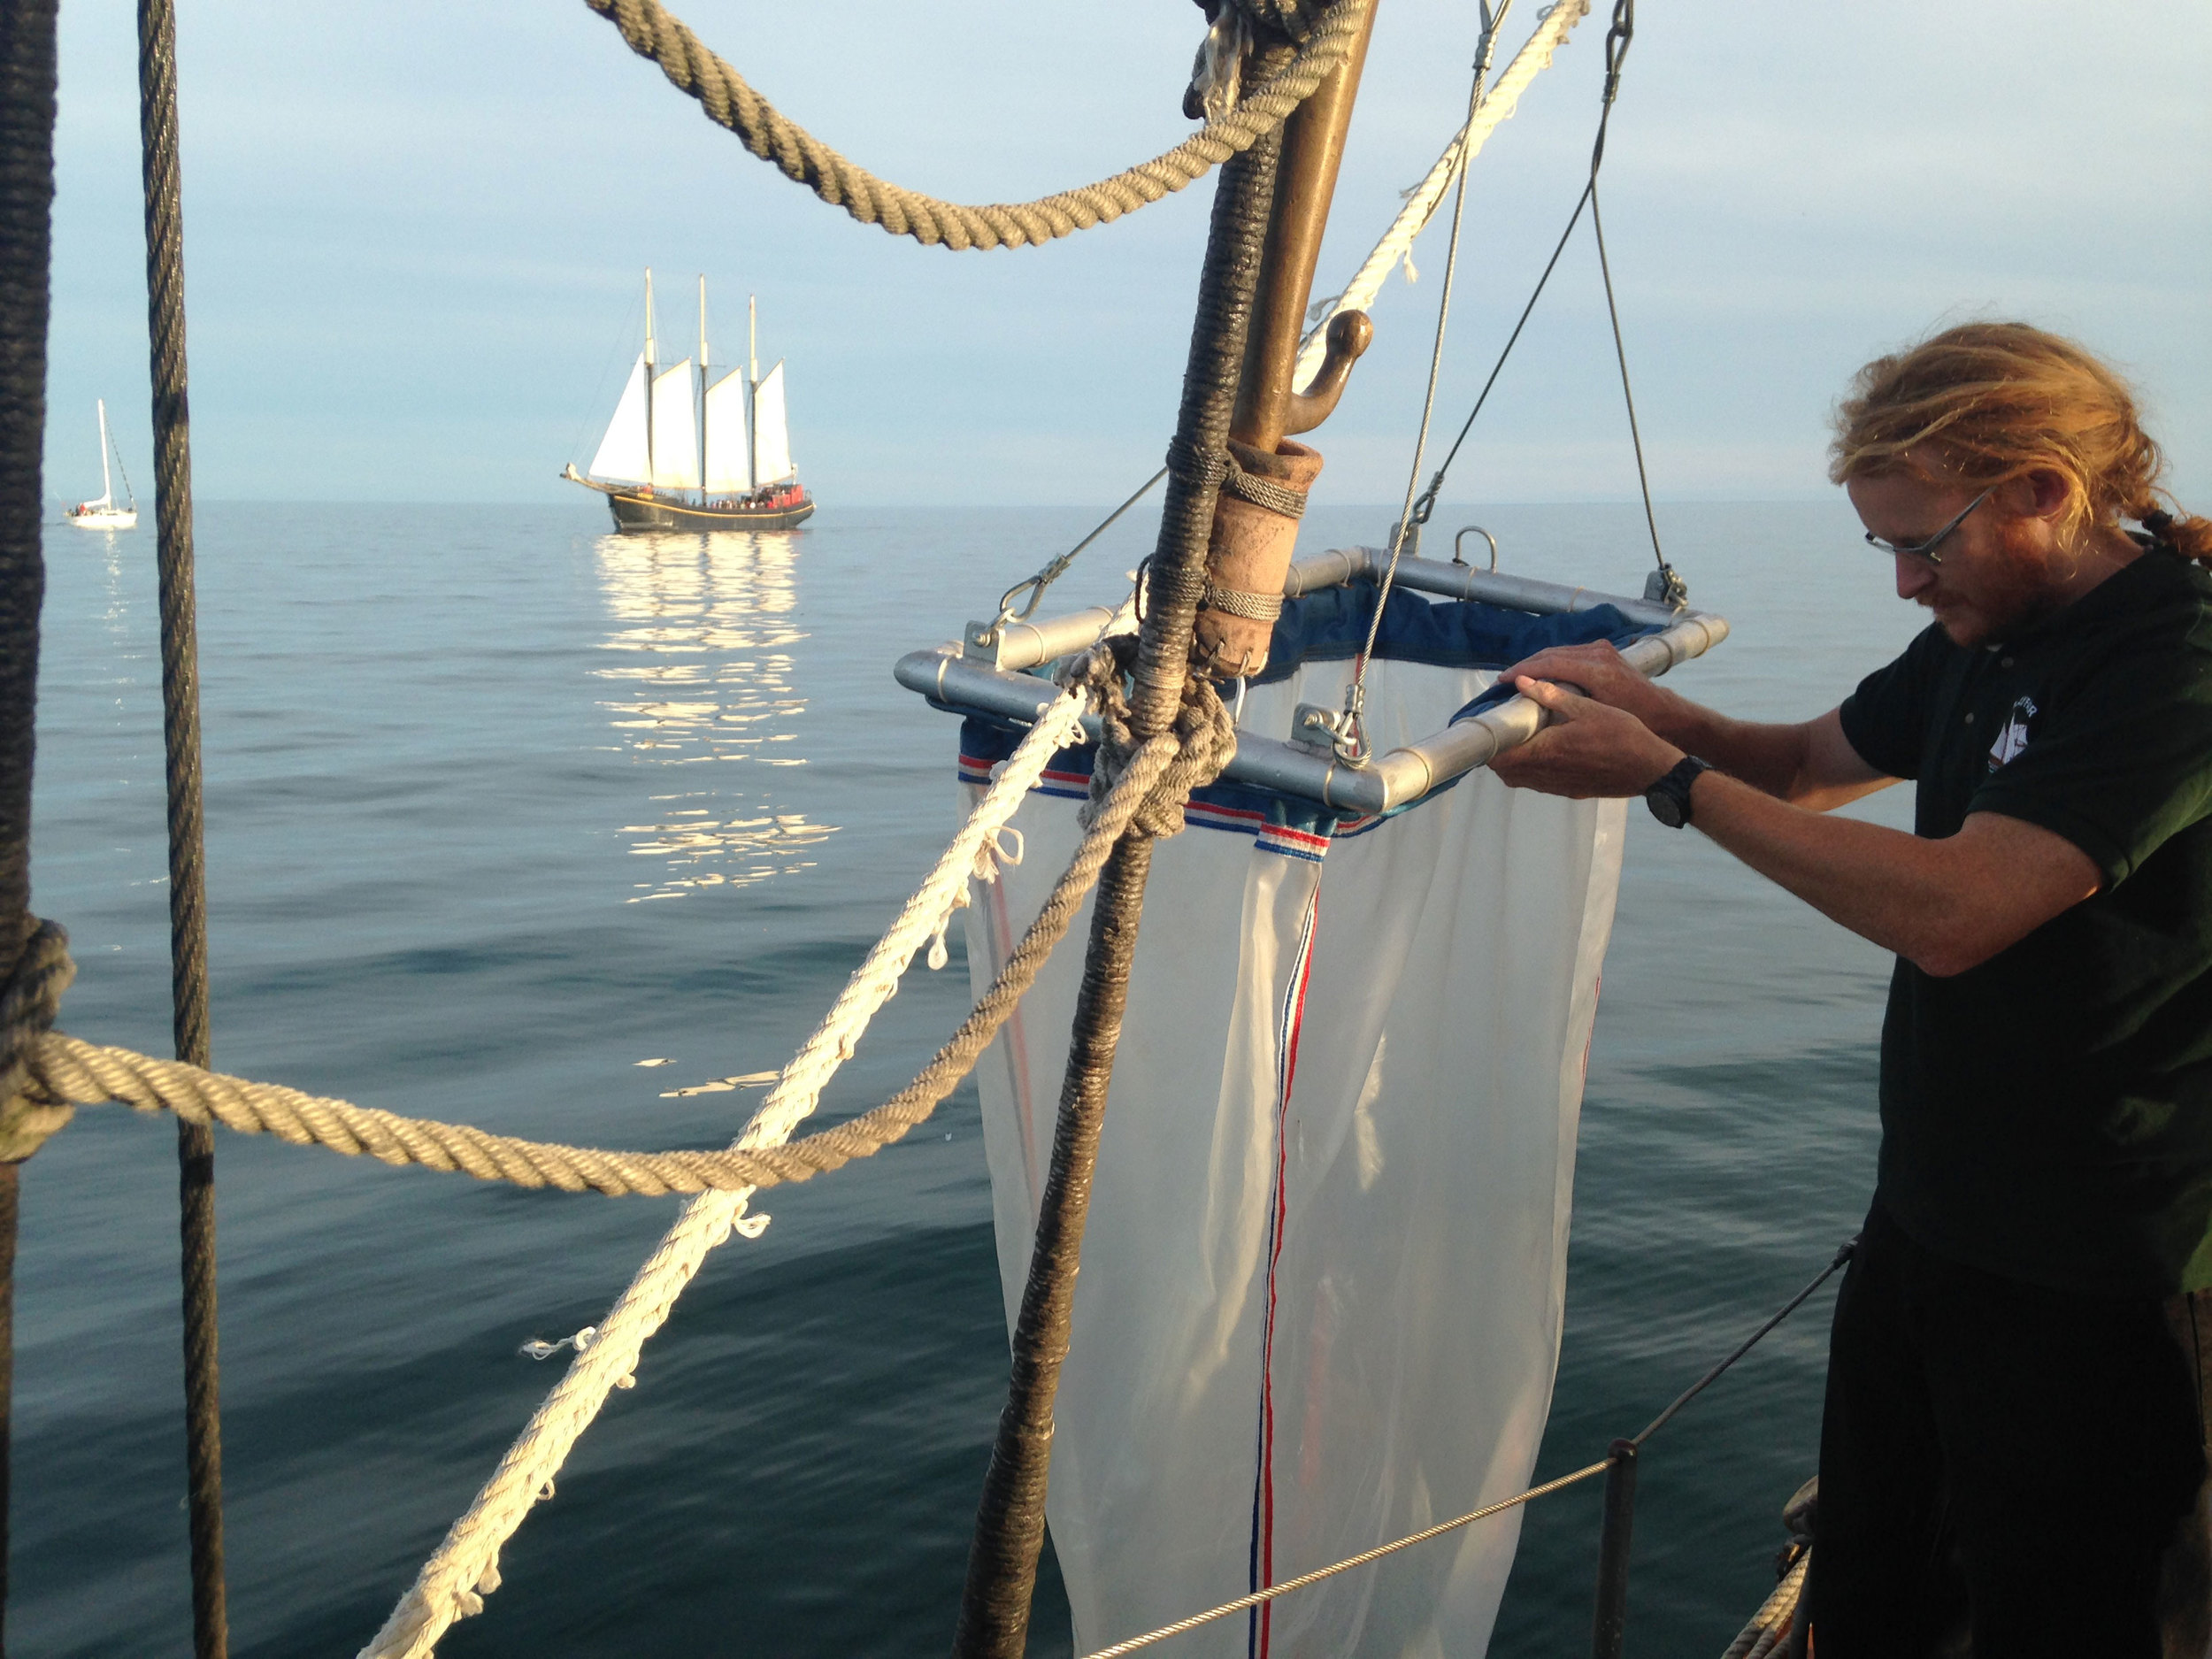 Sampling for microplastics with Ontario Streams and Toronto Brigantine's Tall Ship Adventures for Youth. (Photo via Lake Ontario Waterkeeper)